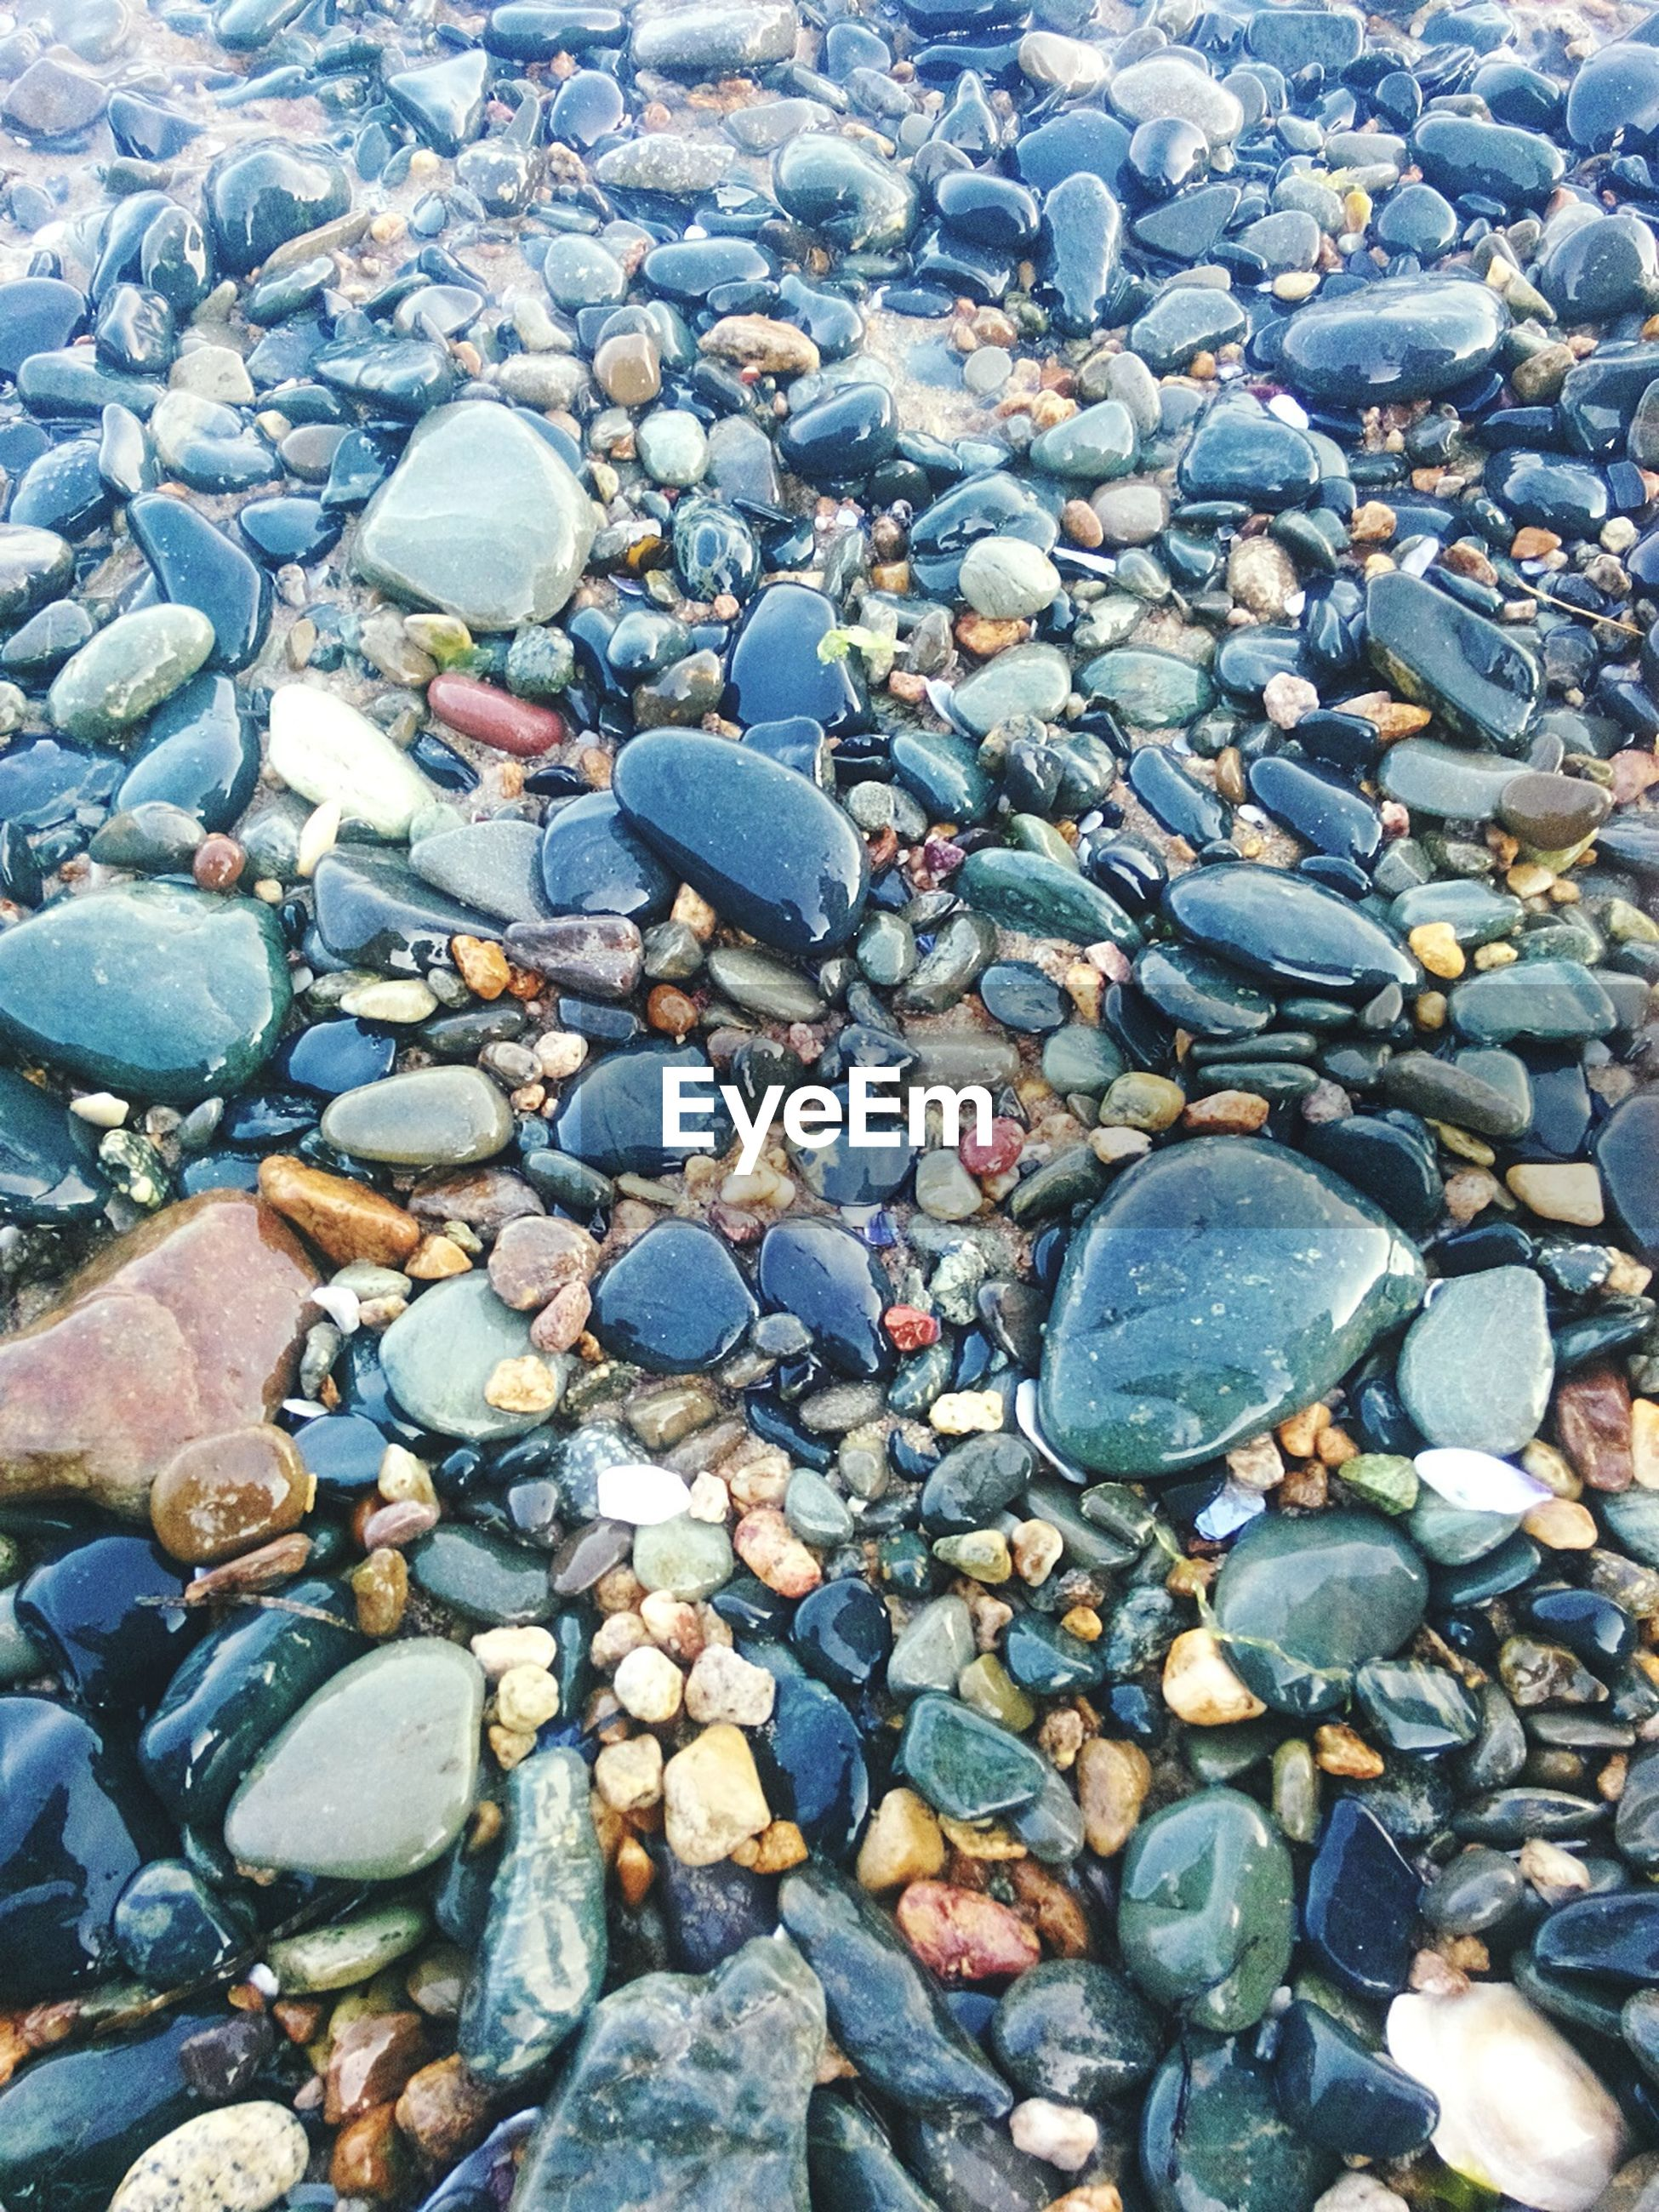 pebble, pebble beach, stone - object, shore, beach, full frame, nature, outdoors, abundance, large group of objects, backgrounds, day, no people, close-up, beauty in nature, water